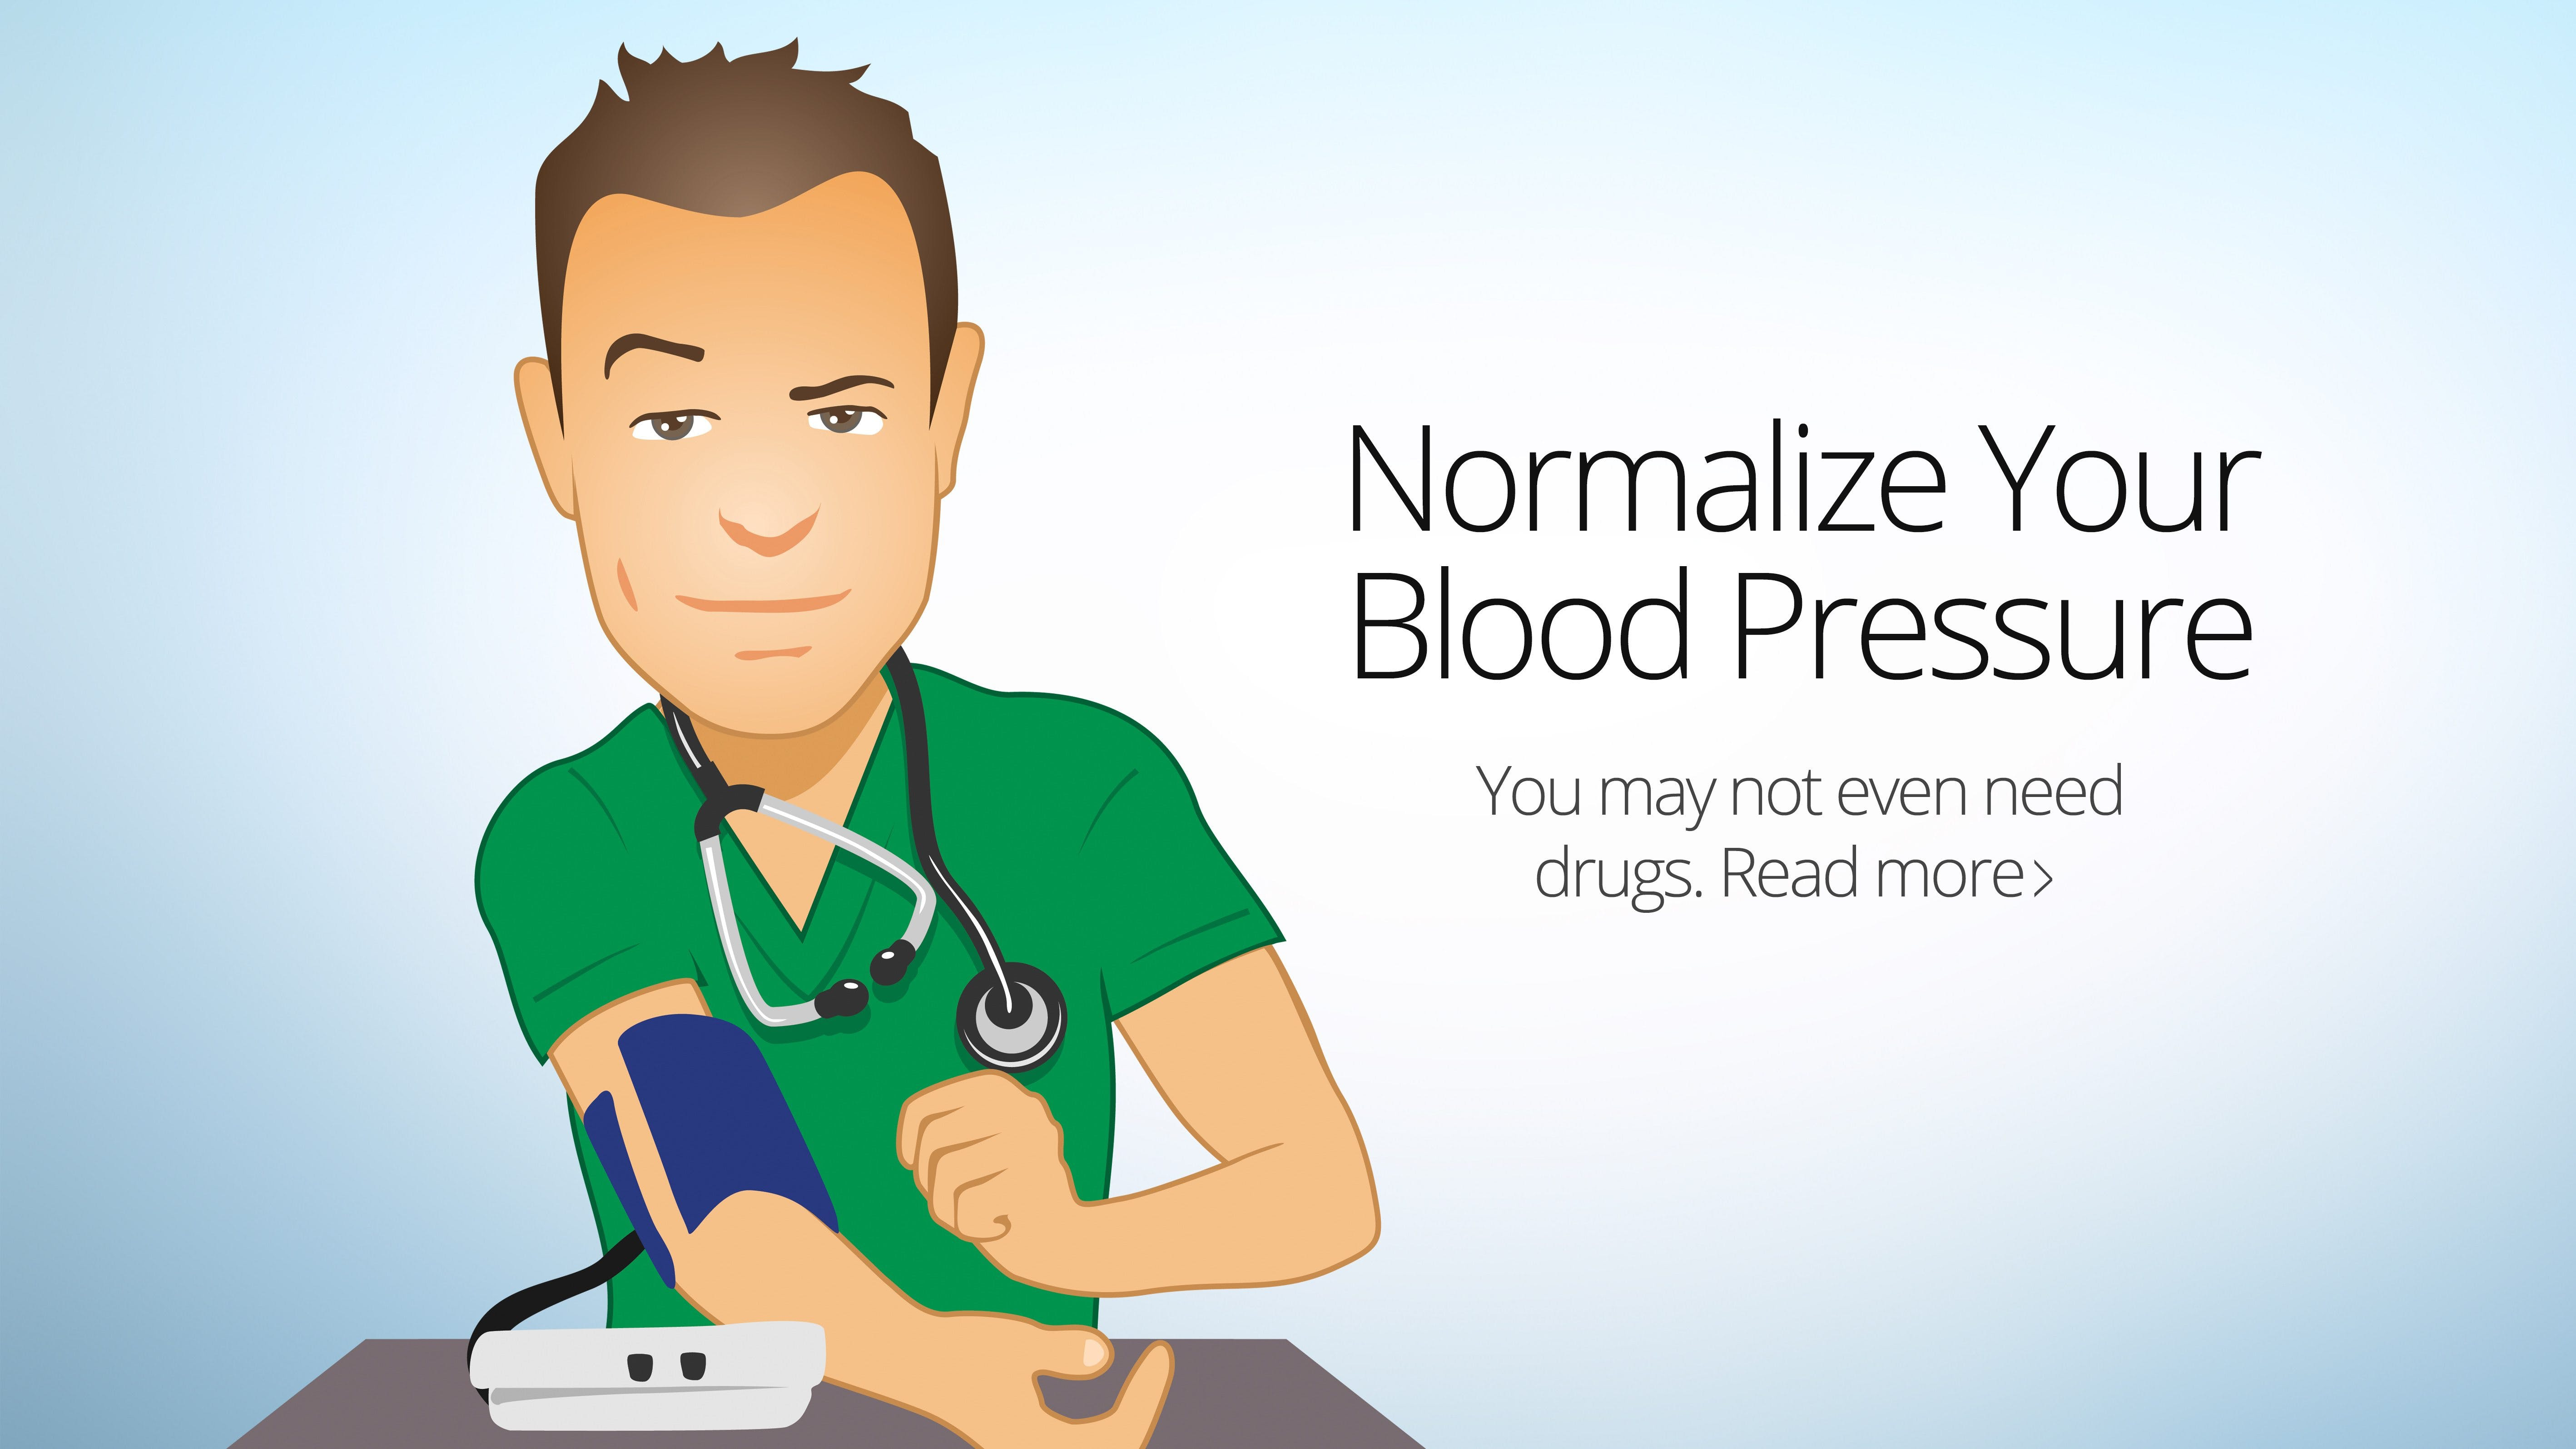 Normalize Your Blood Pressure